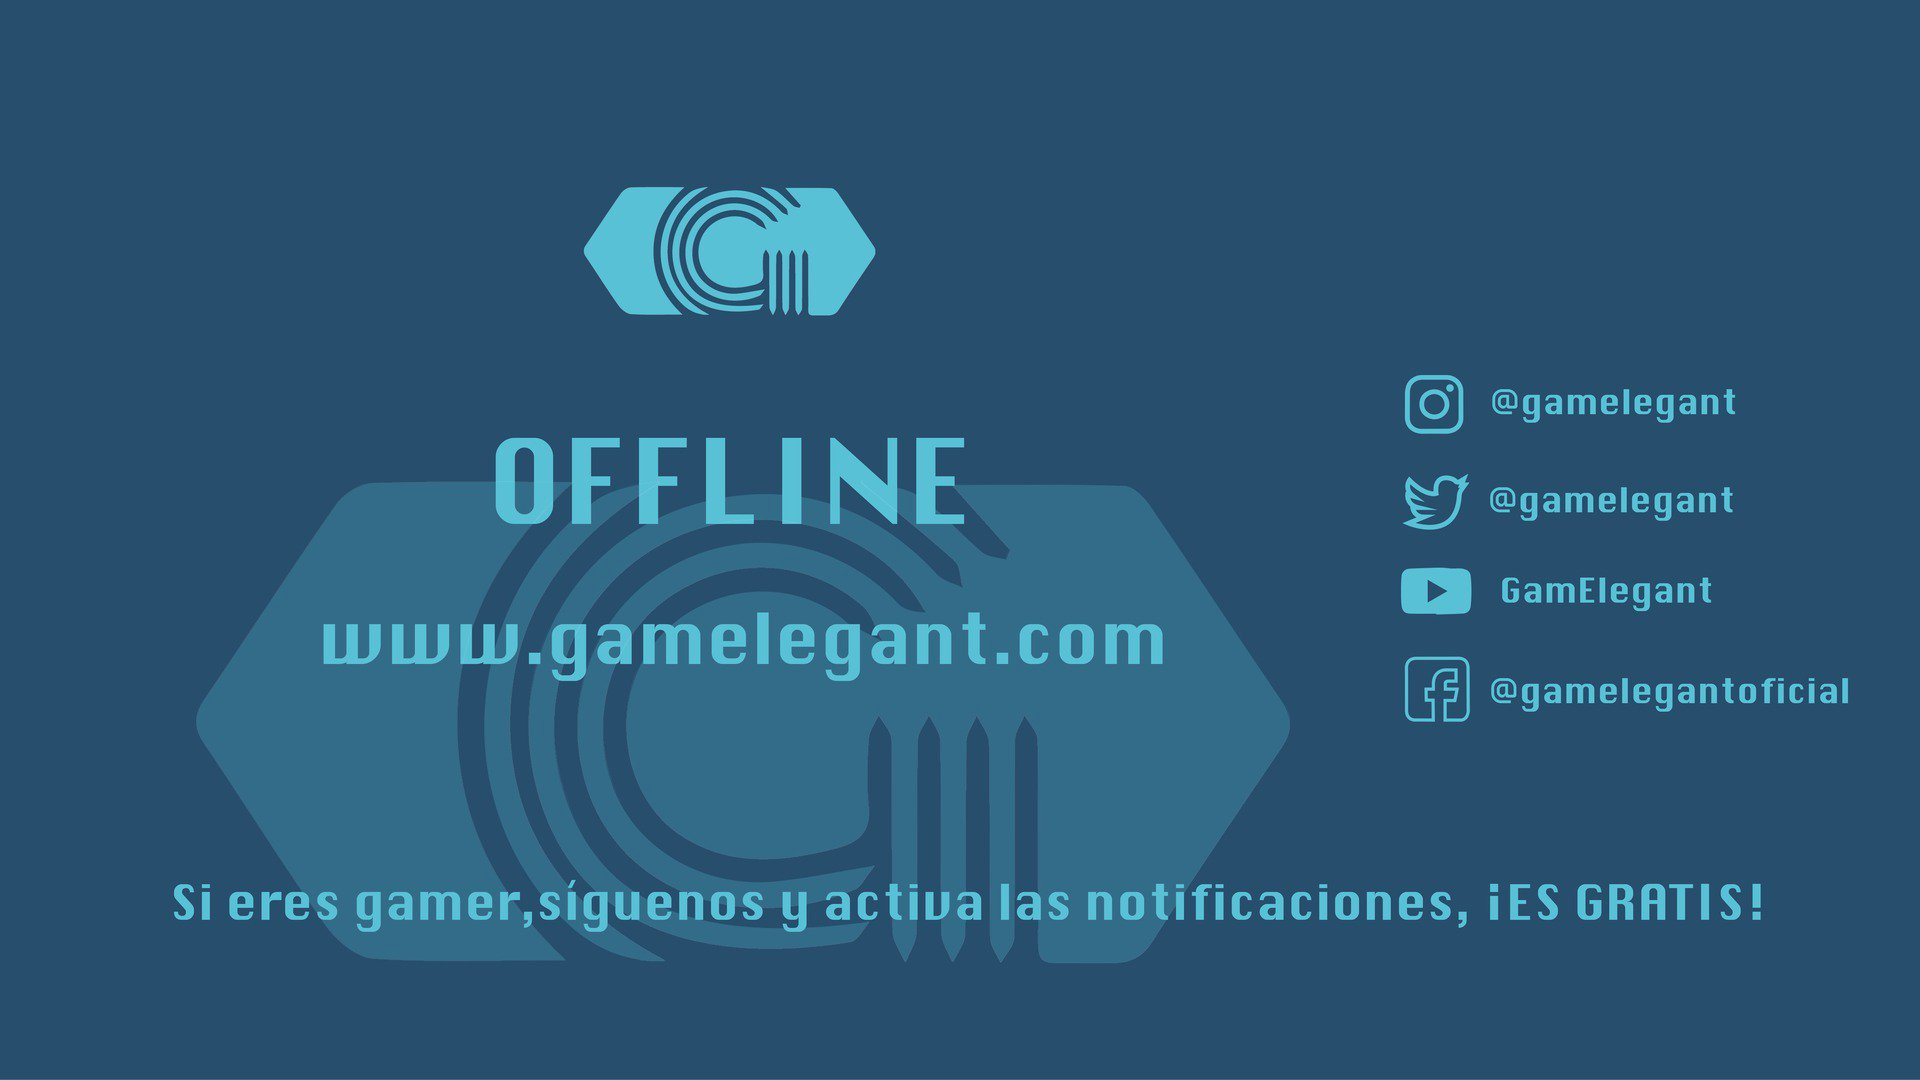 Twitch stream of GamElegant